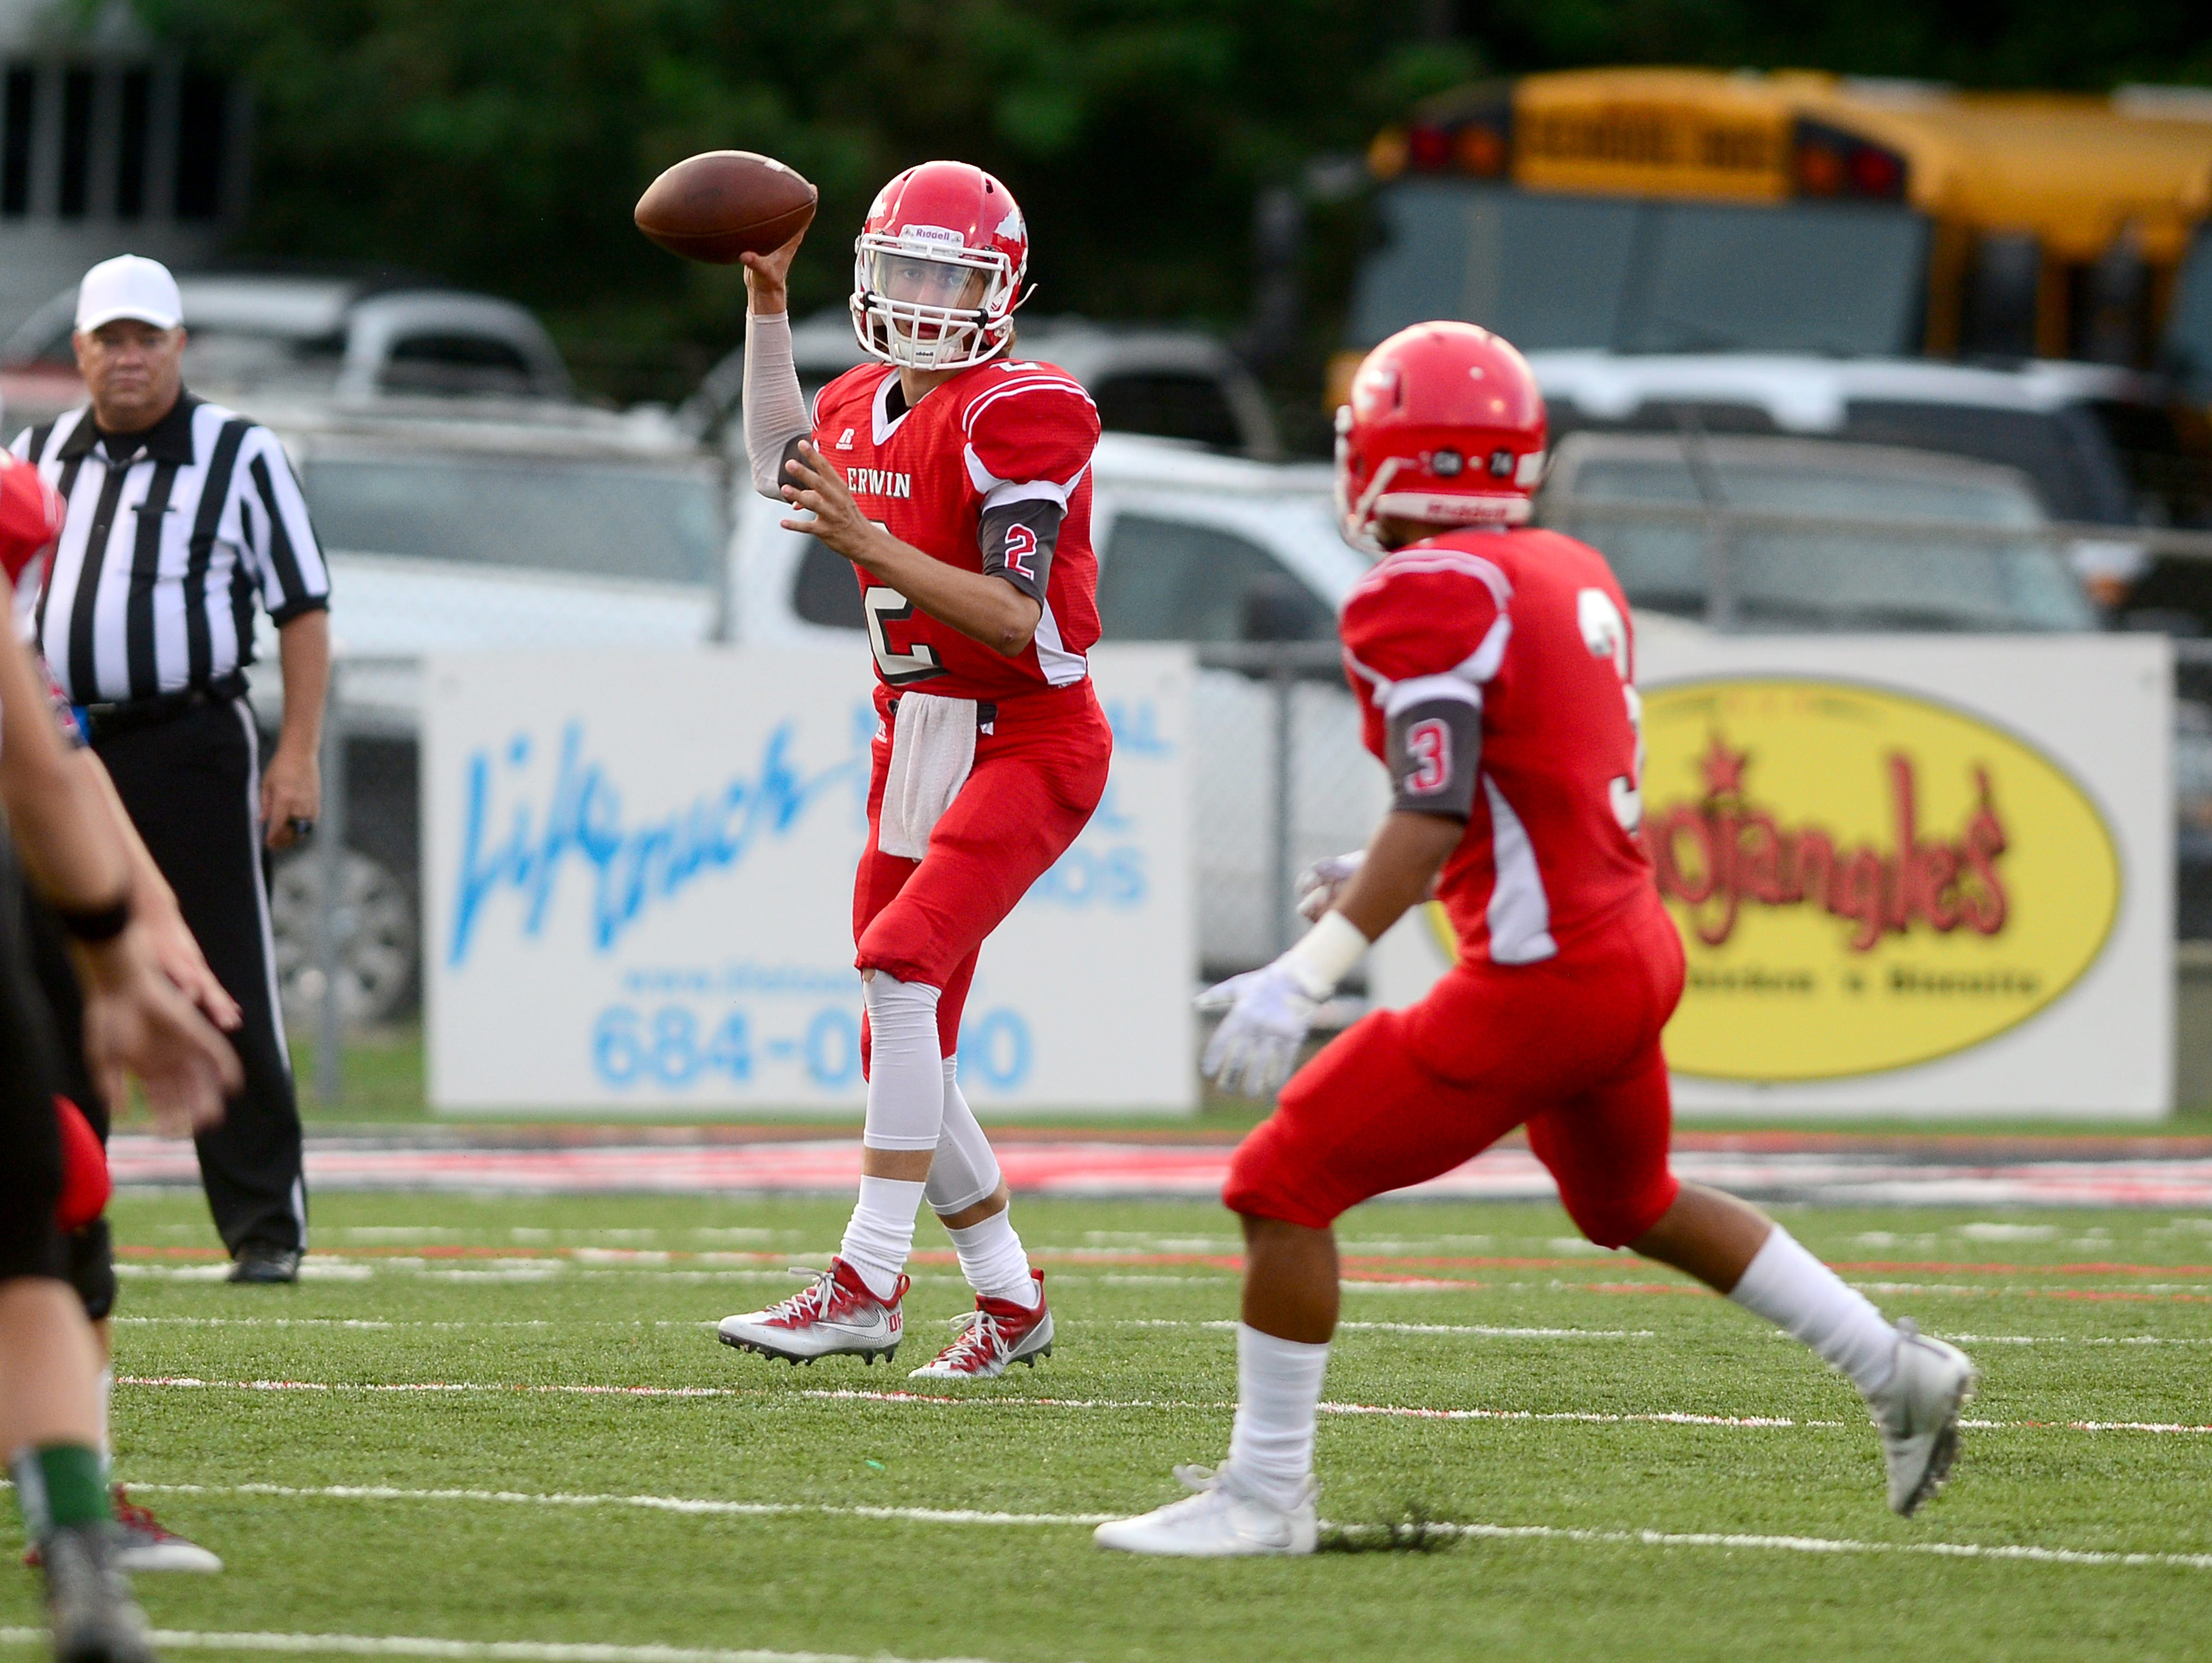 Erwin quarterback Damien Ferguson passed for his 6,000th career yard in Friday's home loss to Mountain Heritage.